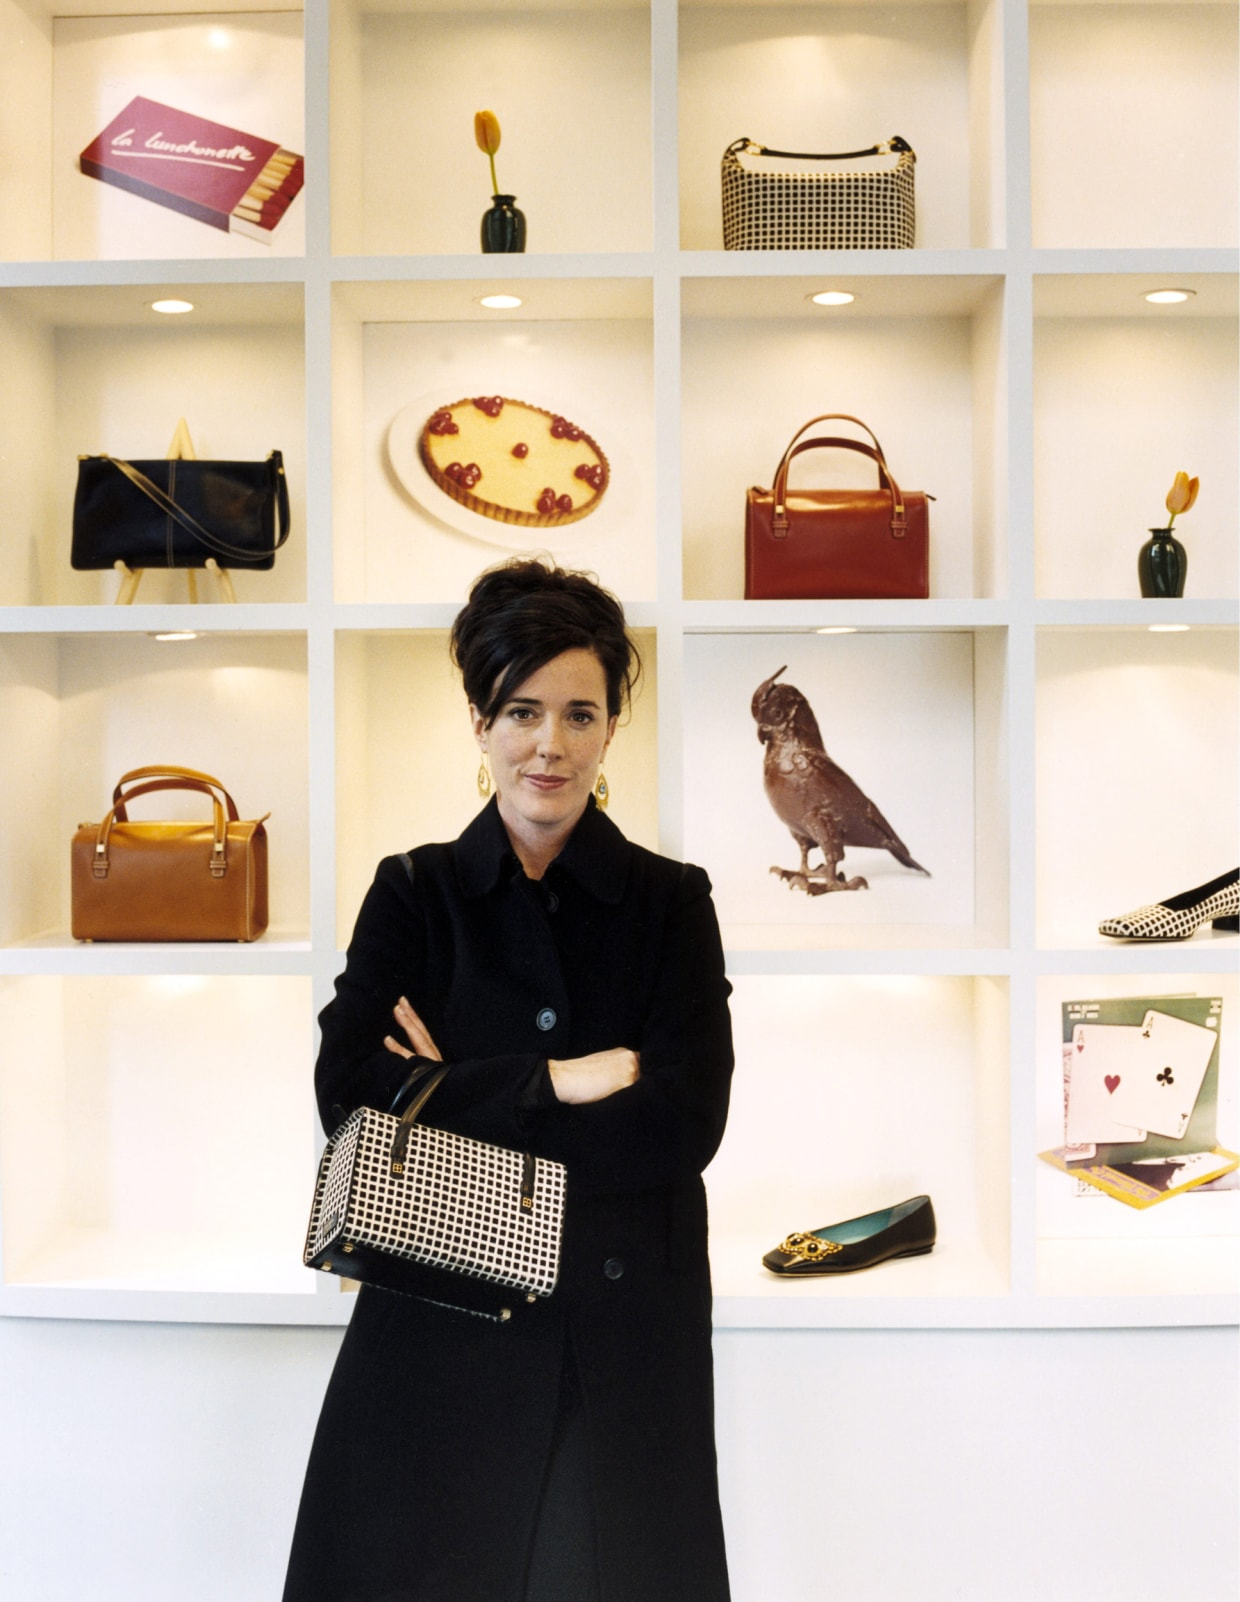 Kate Spade S Death Shines A Light On The Pressures Of Being A Woman In Leadership